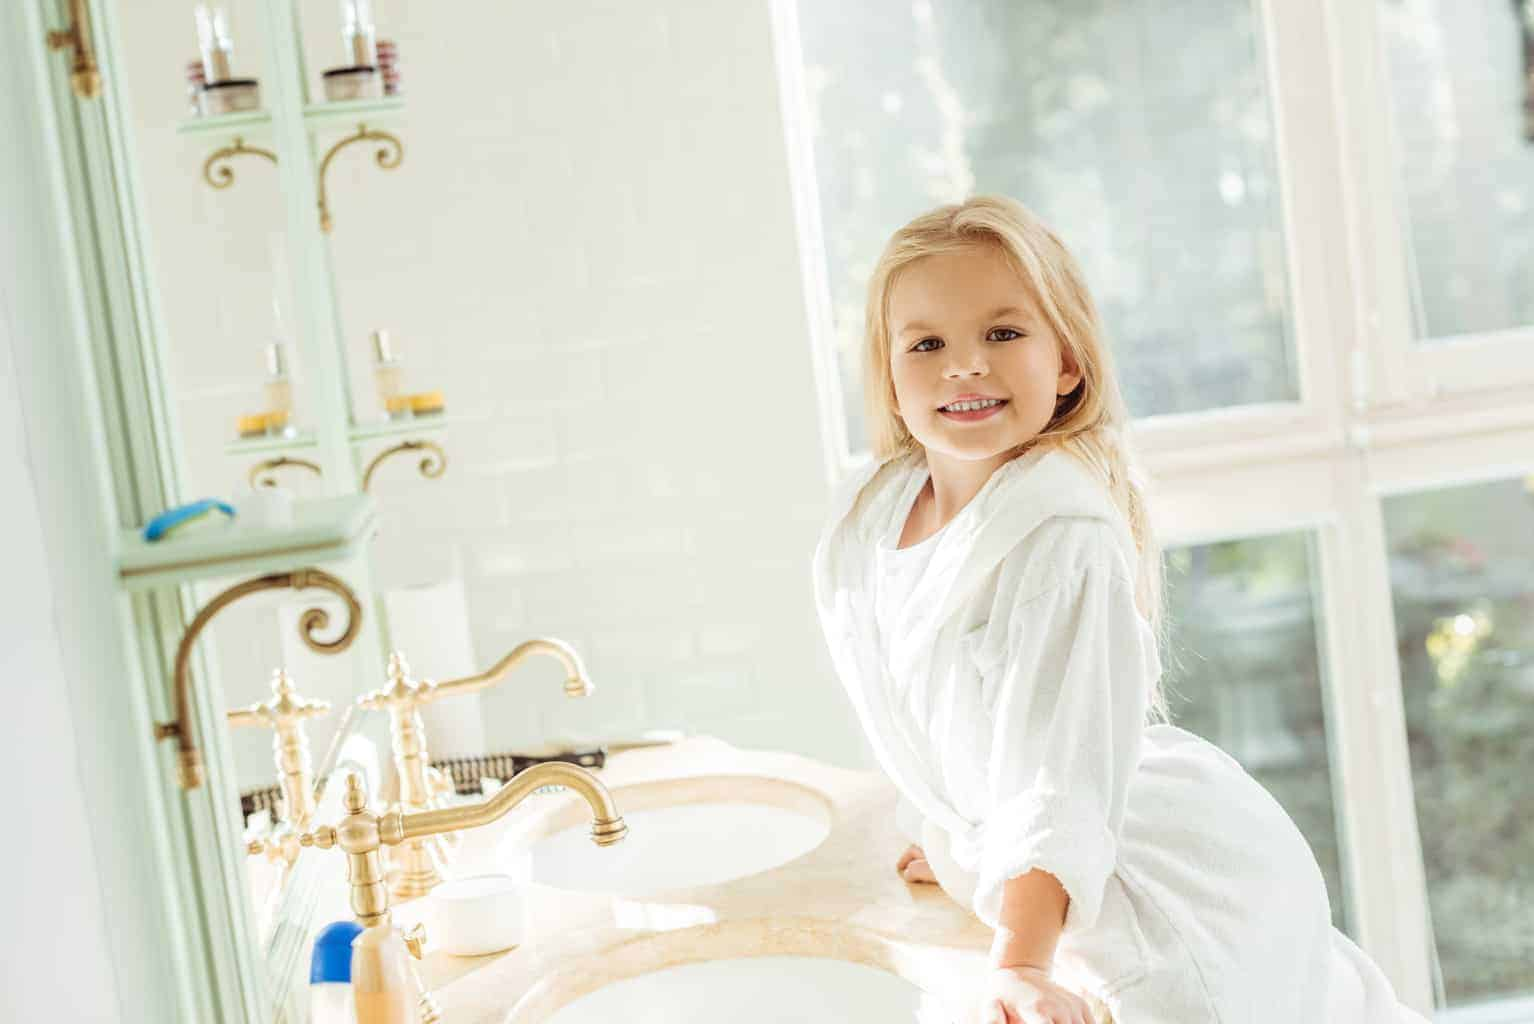 How to style your family bathroom without draining your budget